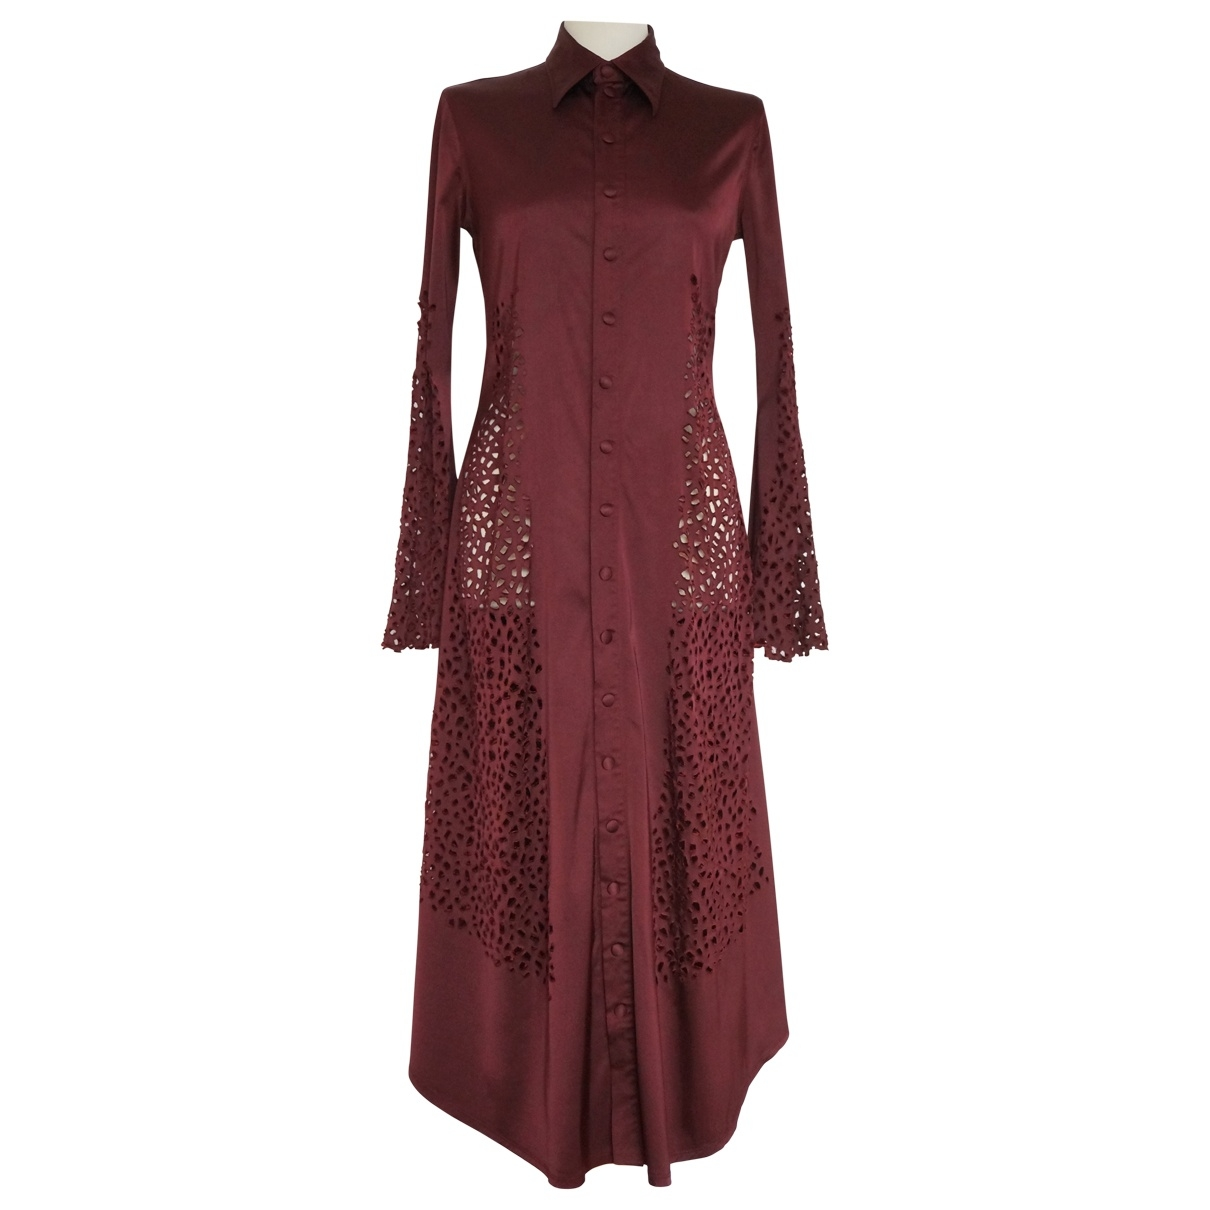 Jean Paul Gaultier \N Burgundy dress for Women 46 IT